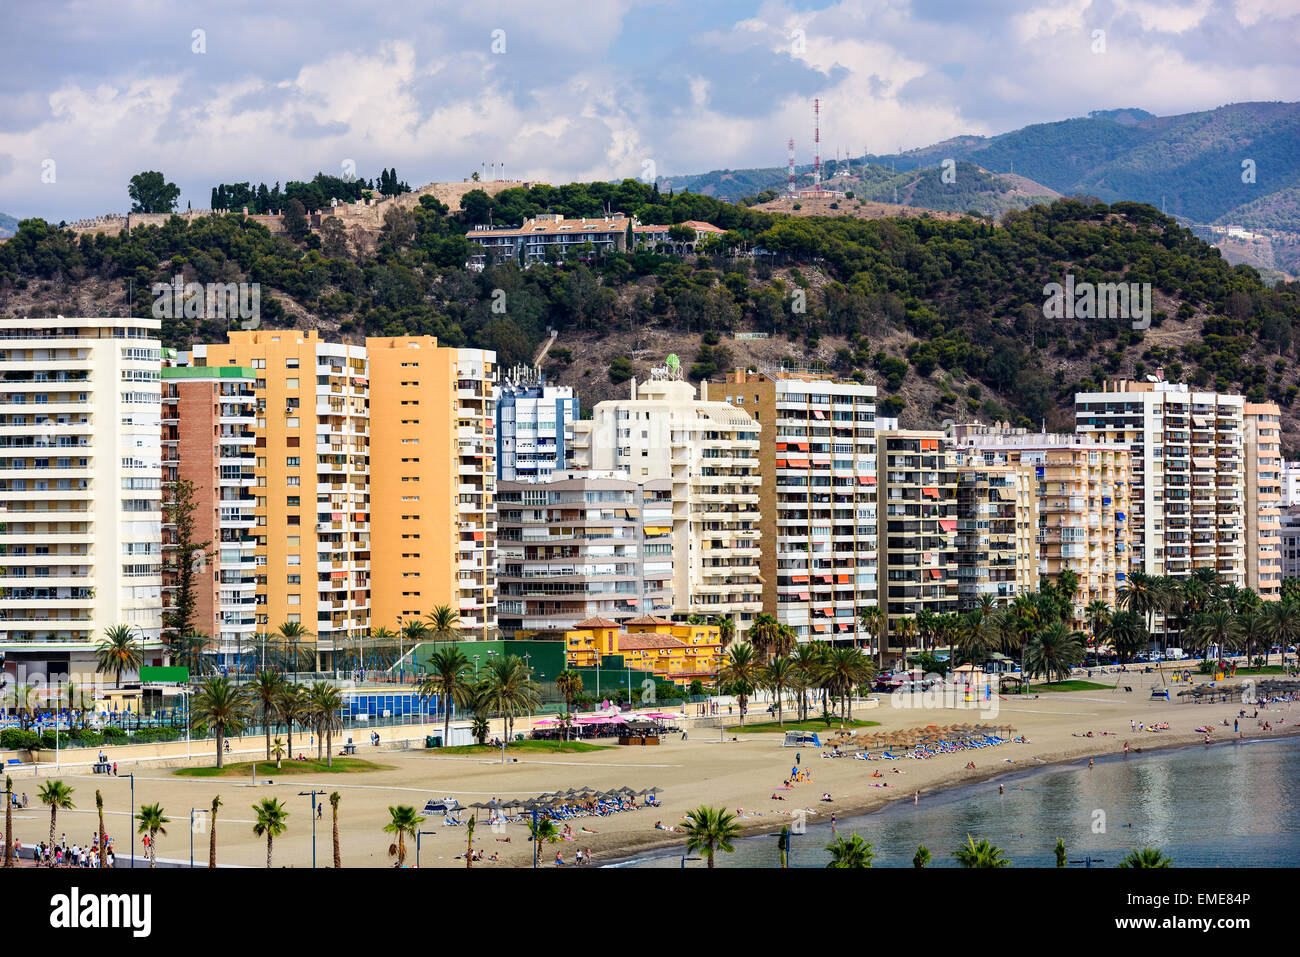 Malaga, Spain resort skyline at Malagueta Beach. - Stock Image